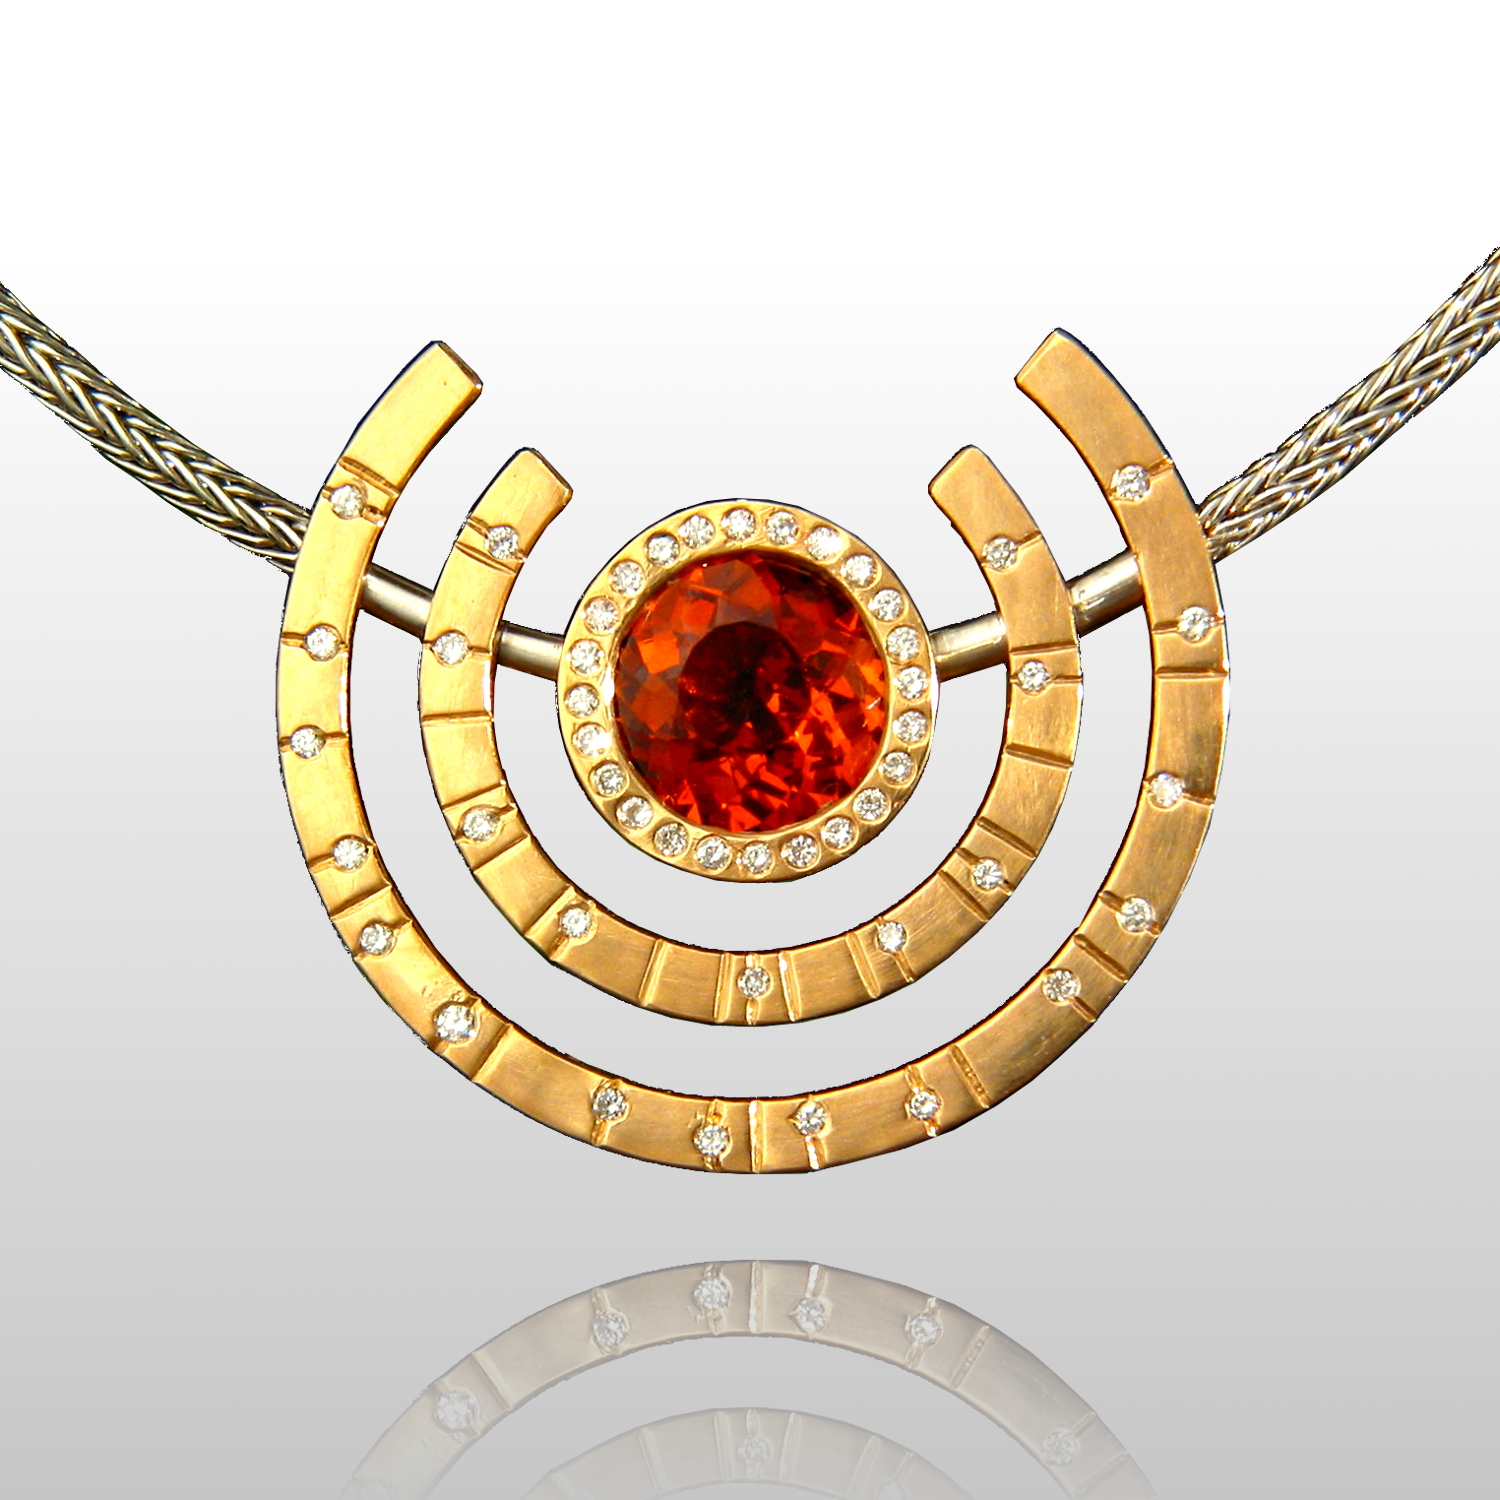 One-of-a-Kind Necklace 'Day and Night' - Platinum, 18k Peach Gold, Mandarin Garnet, Diamonds by Pratima Design Fine Art Jewelry